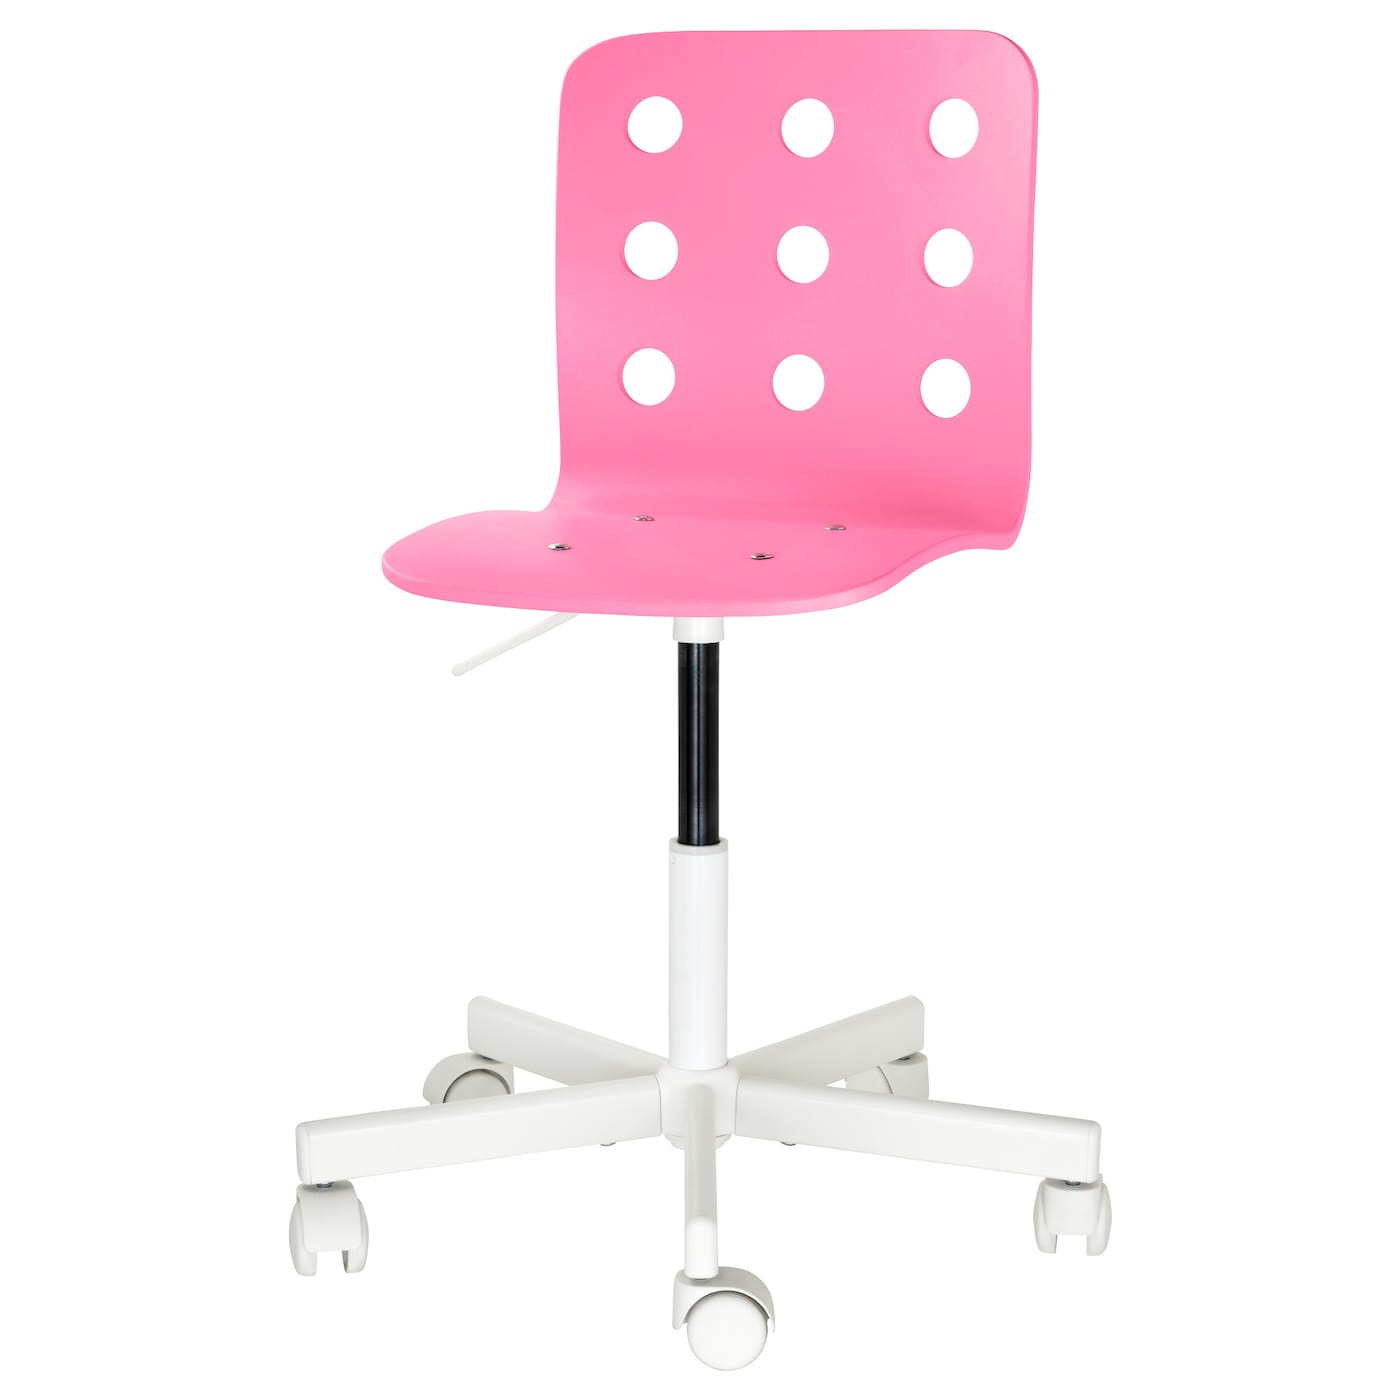 jules children 39 s desk chair pink white ikea. Black Bedroom Furniture Sets. Home Design Ideas